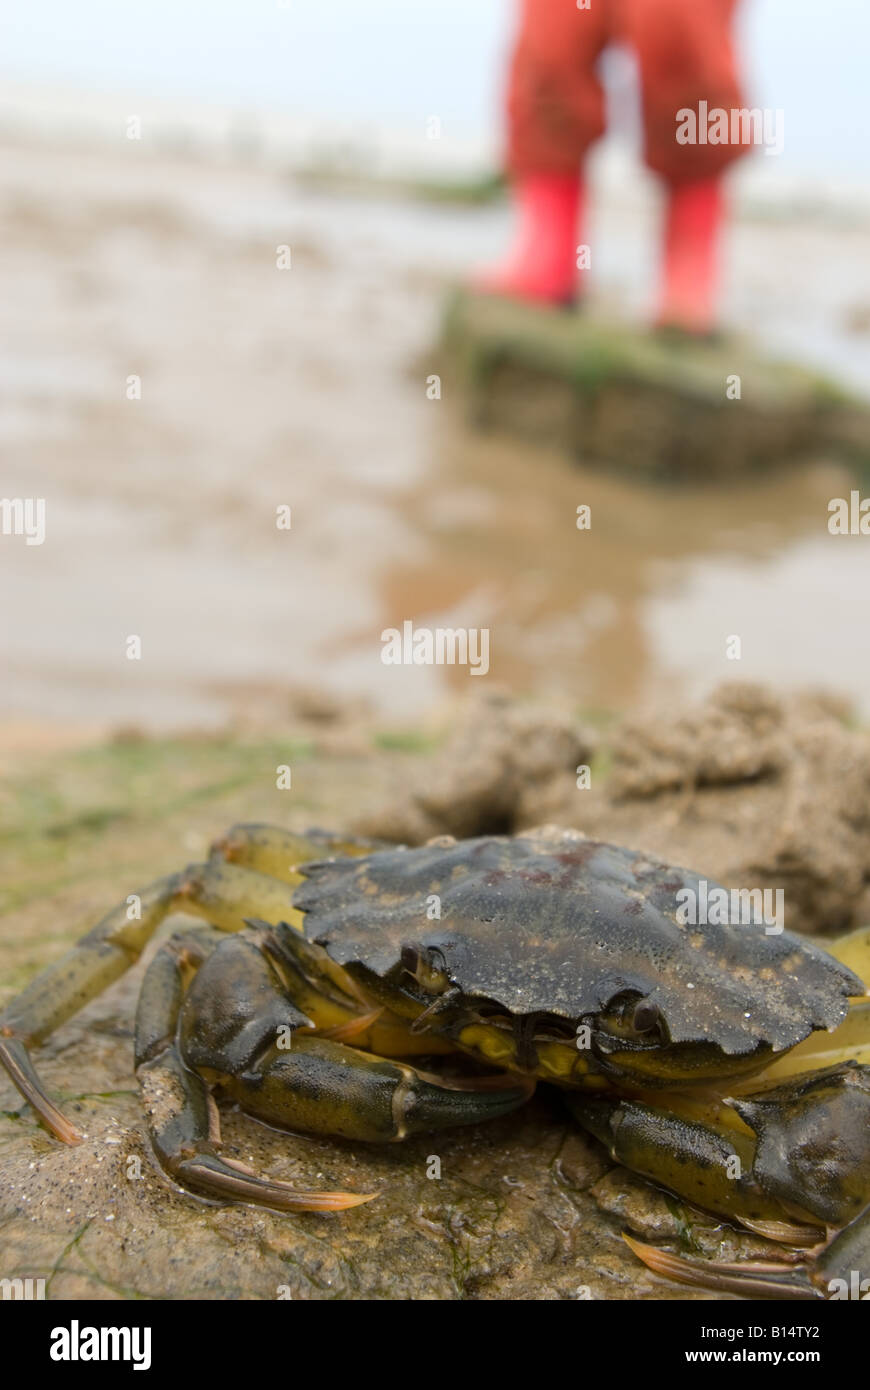 Crab on rock with small boy - Stock Image